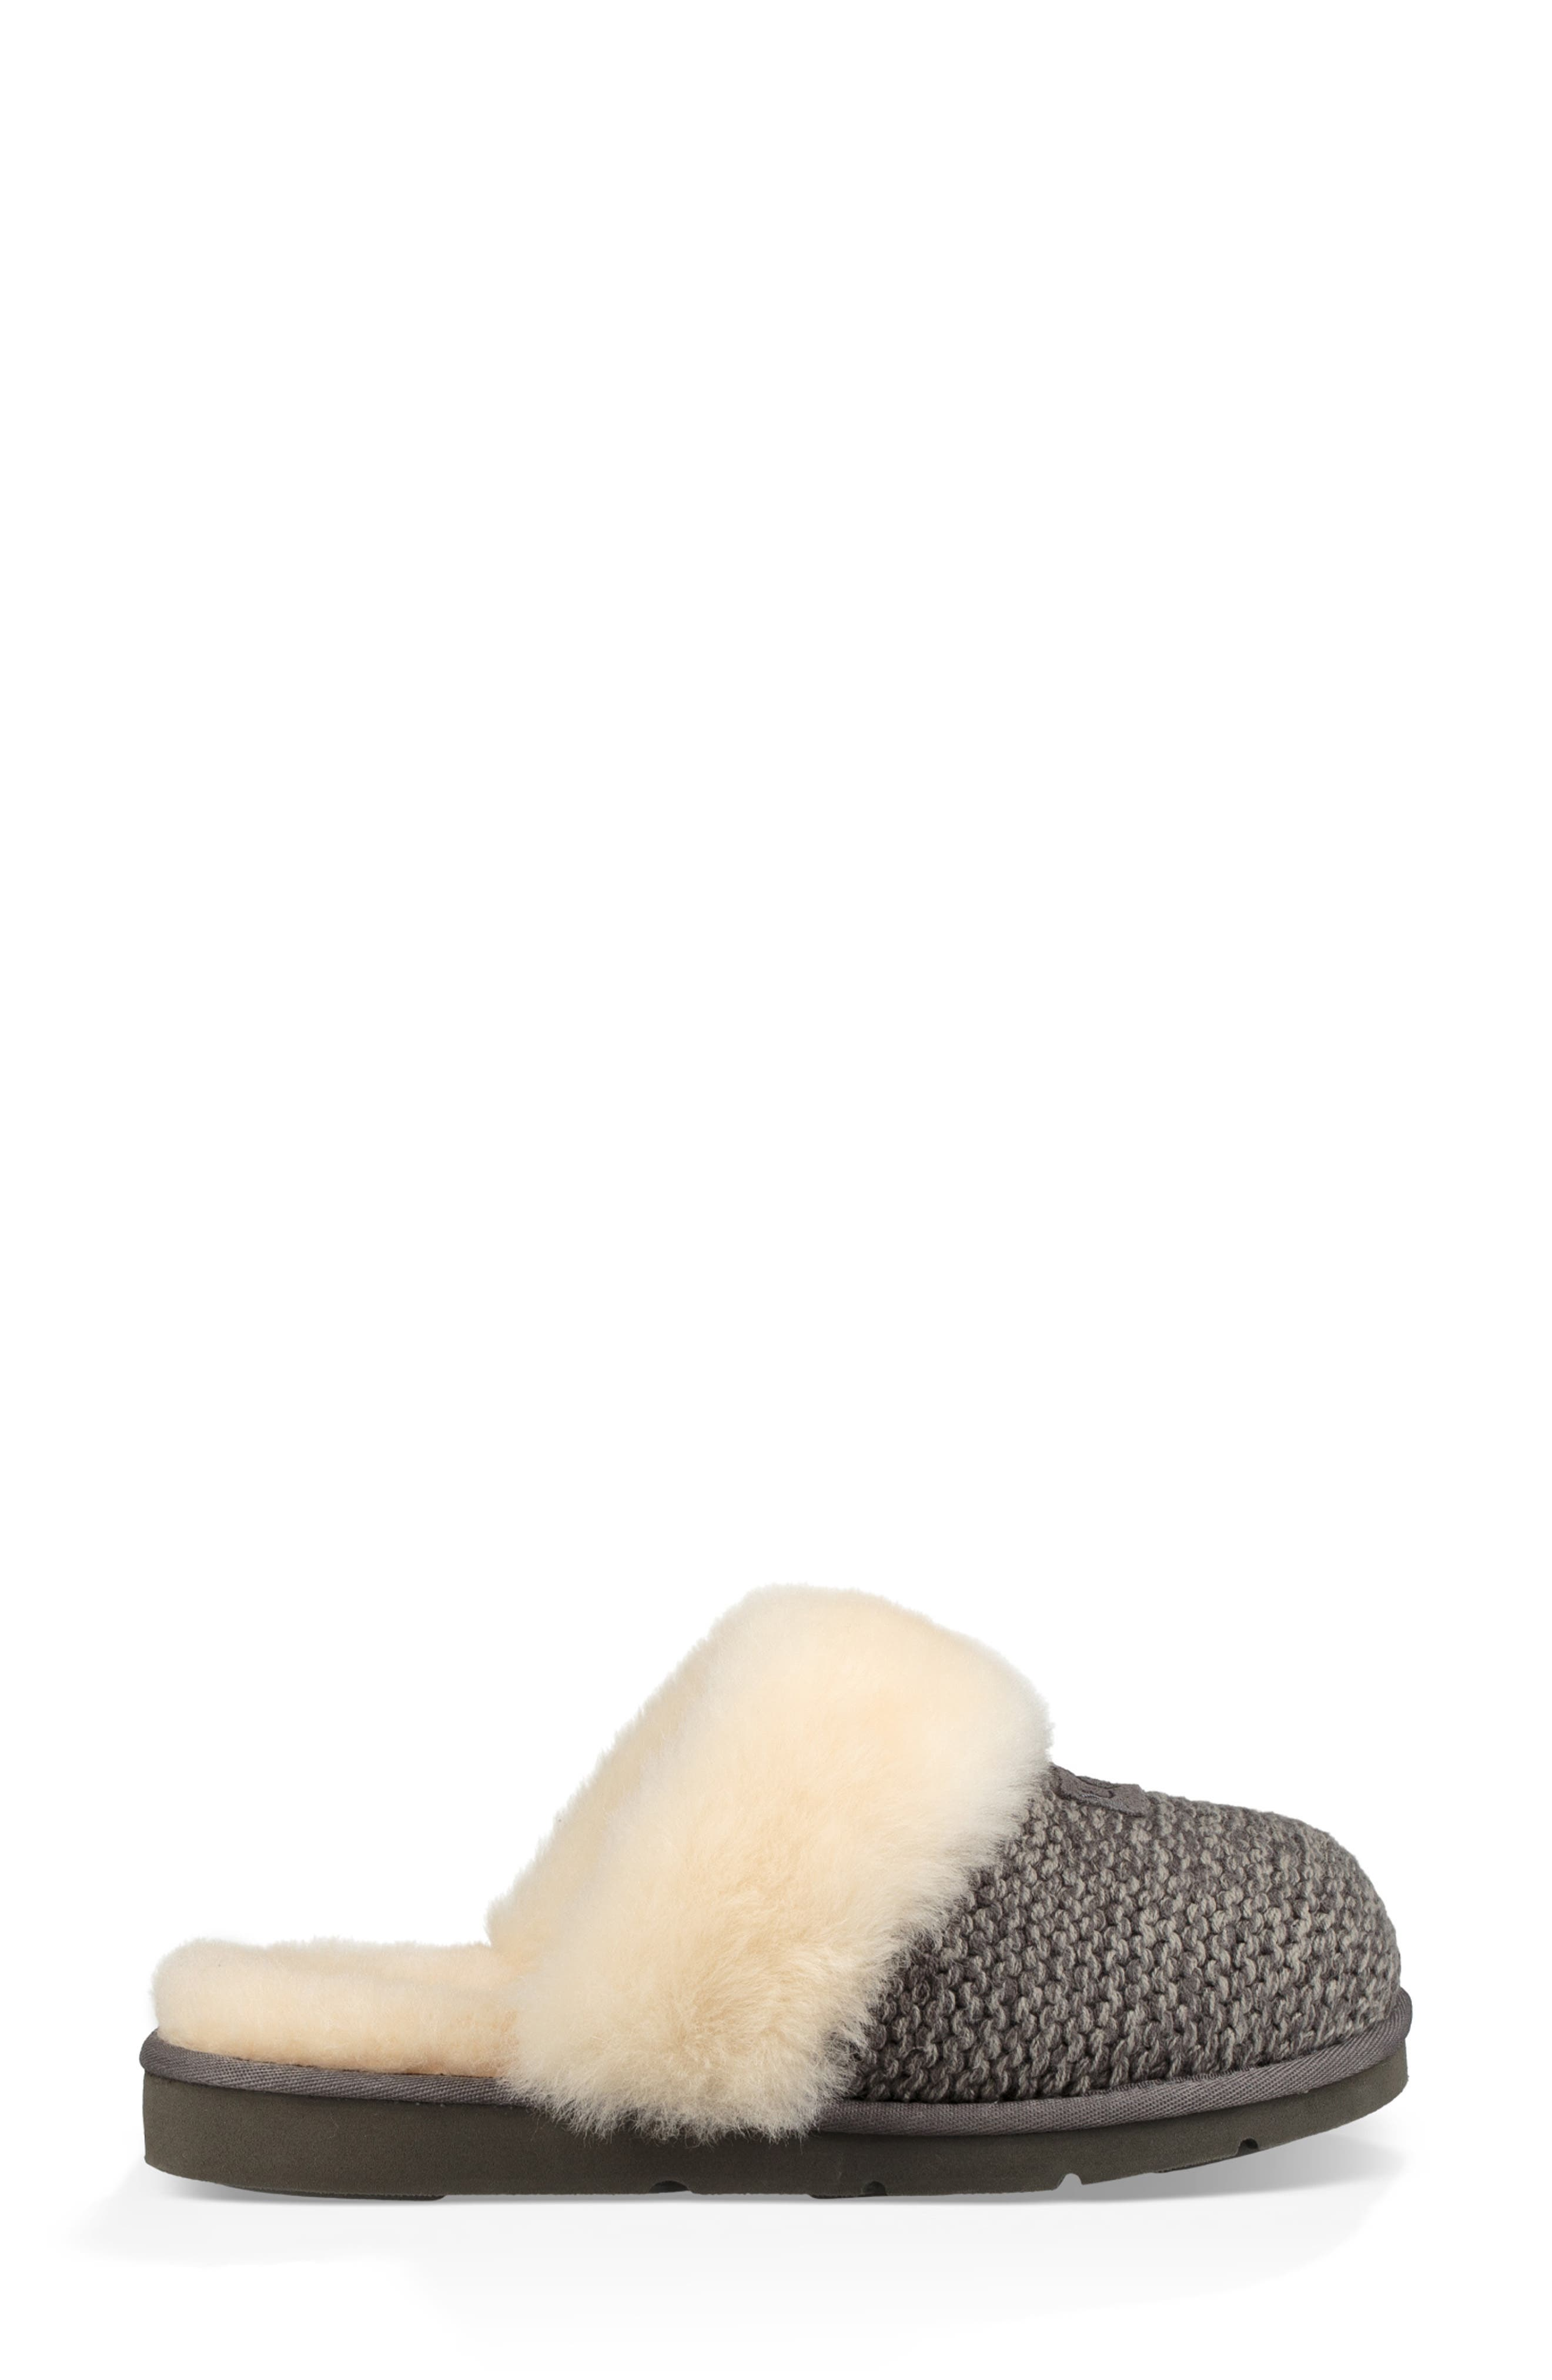 UGG<SUP>®</SUP>, Cozy Knit Genuine Shearling Slipper, Alternate thumbnail 3, color, CHARCOAL